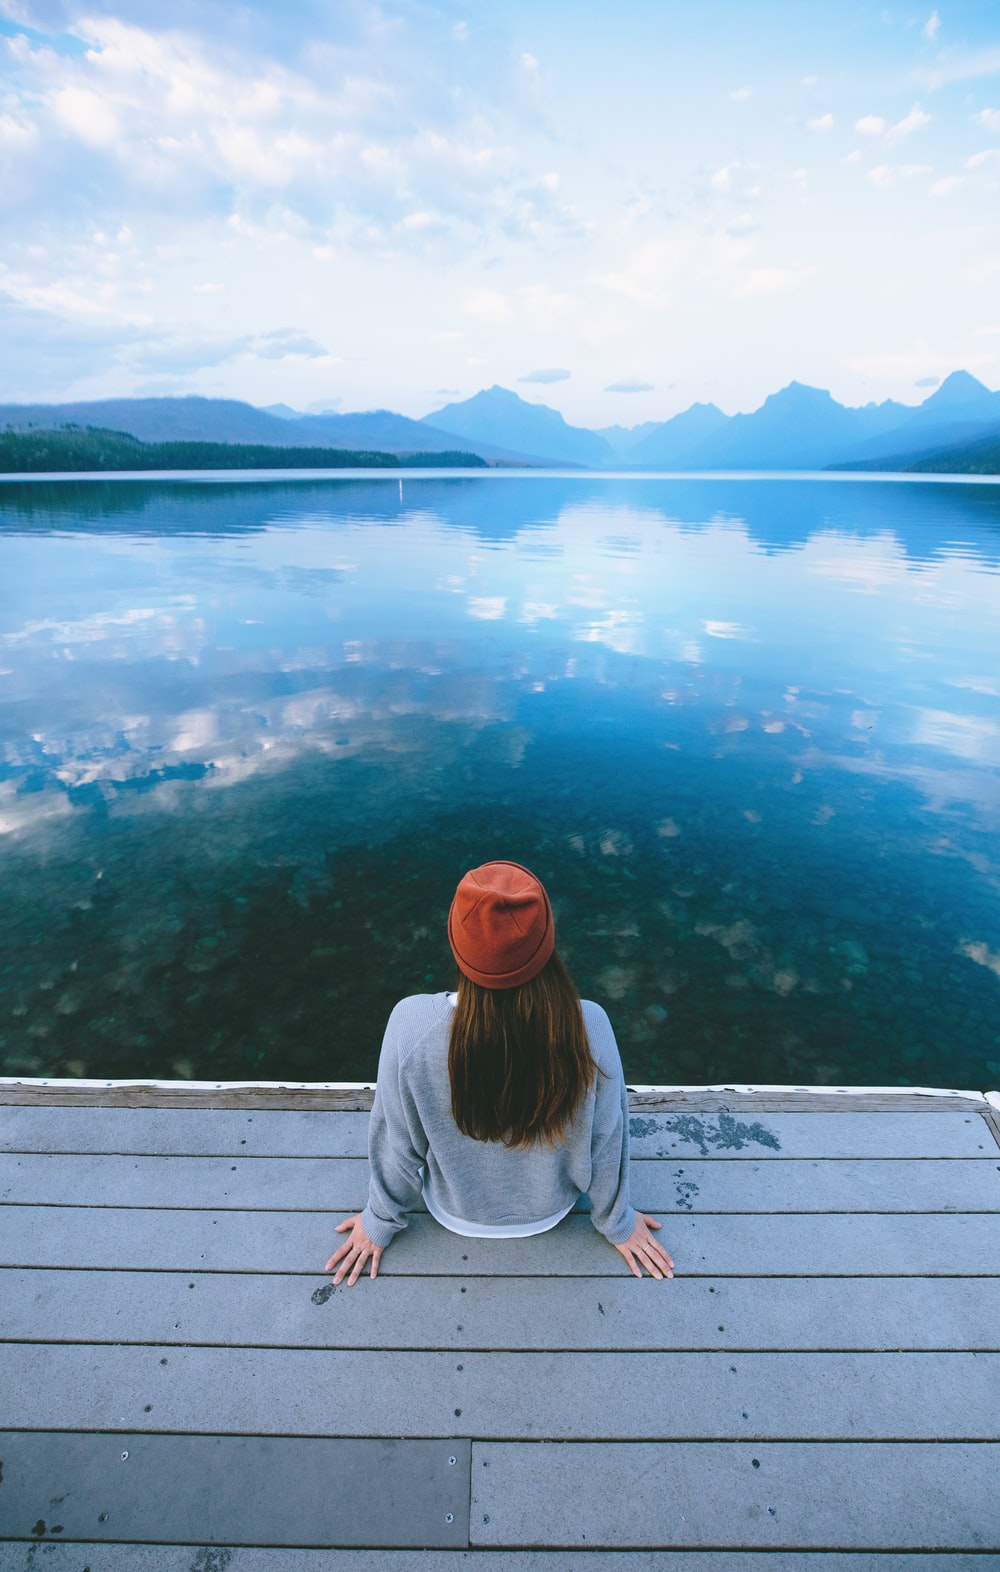 woman sitting in front of calm body of water